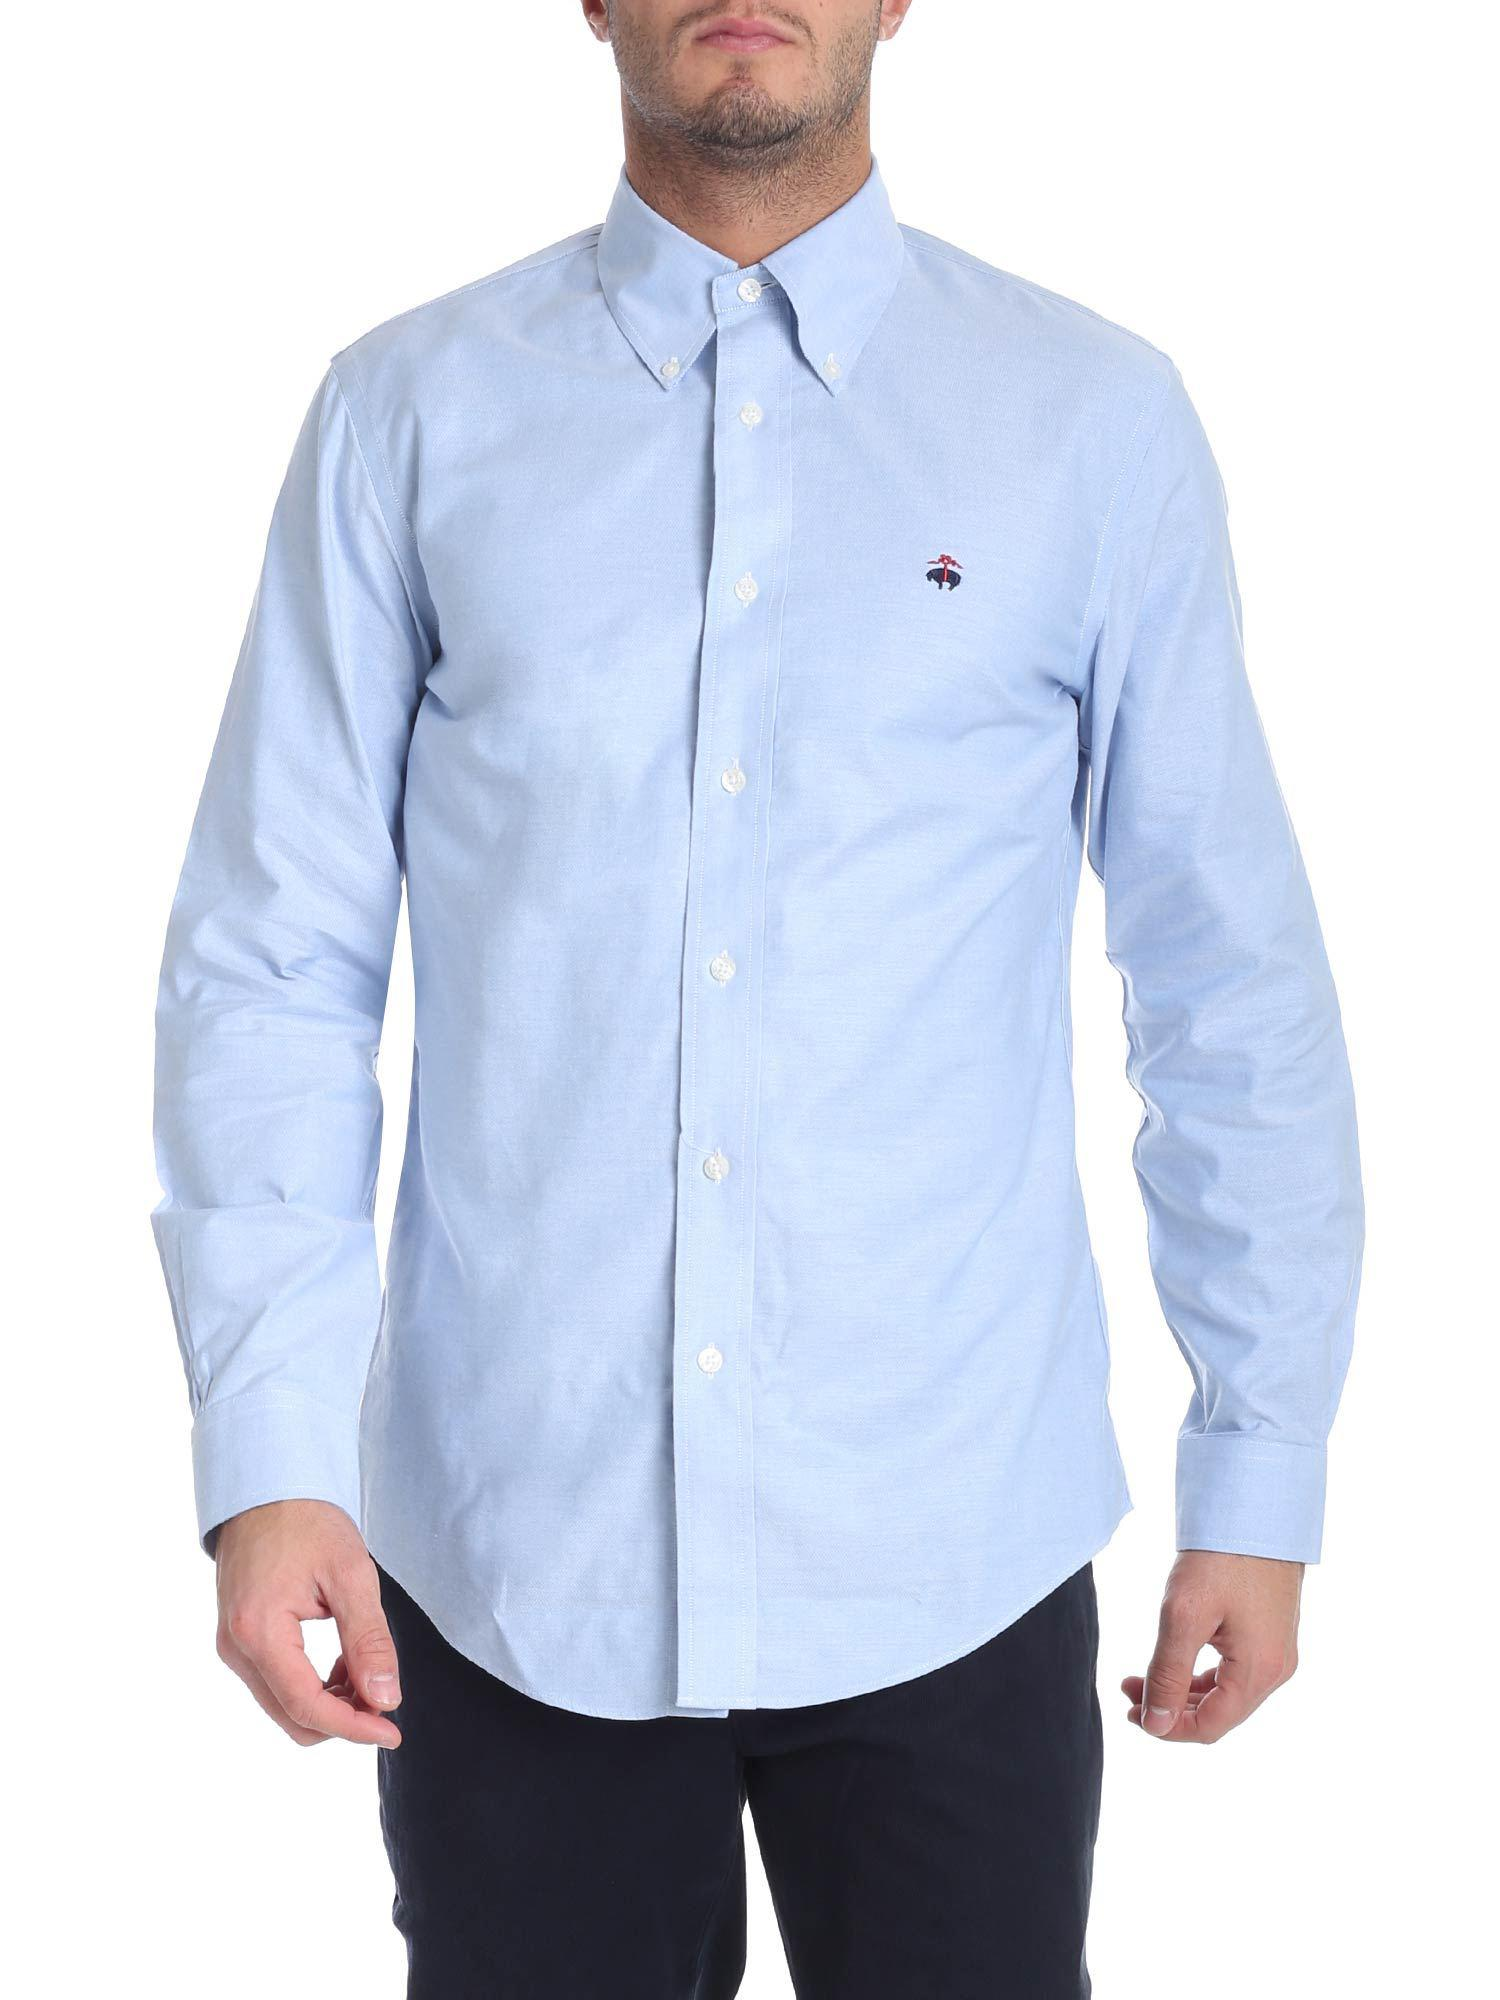 Lyst Brooks Brothers Light Blue Button Down Shirt In Blue For Men